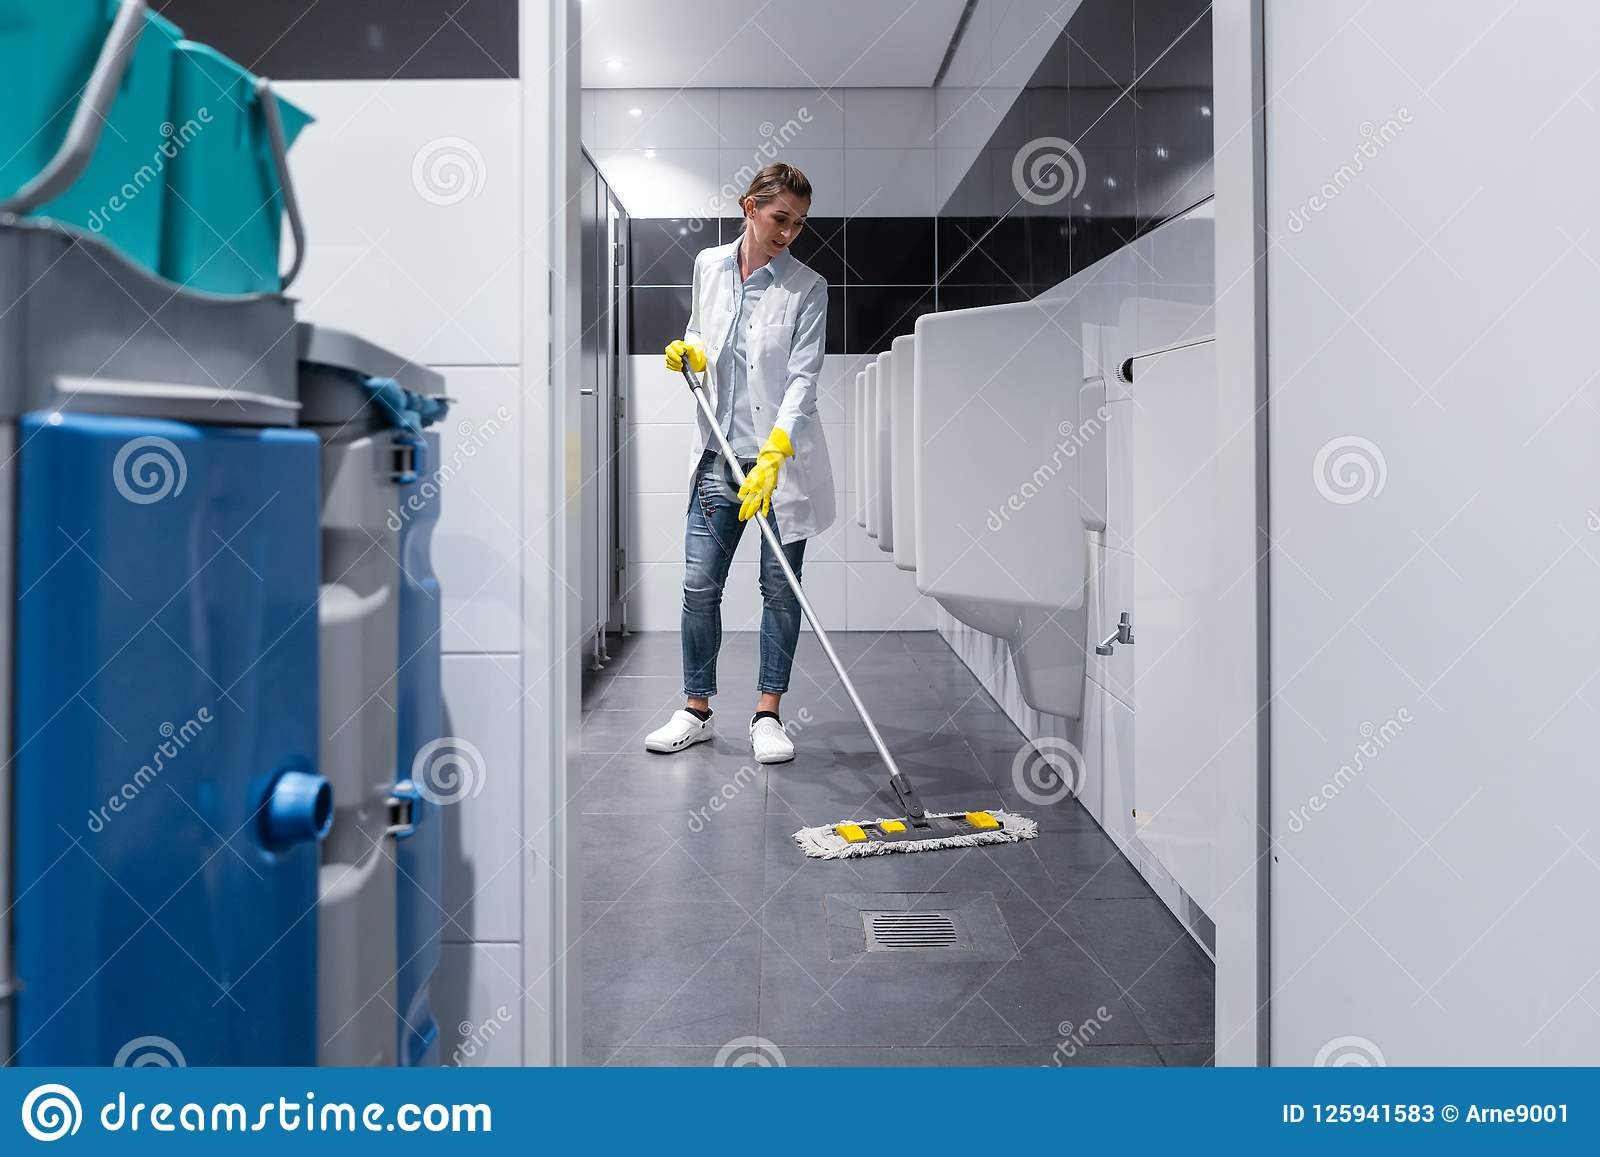 Cleaning lady mopping the floor in mens restroom